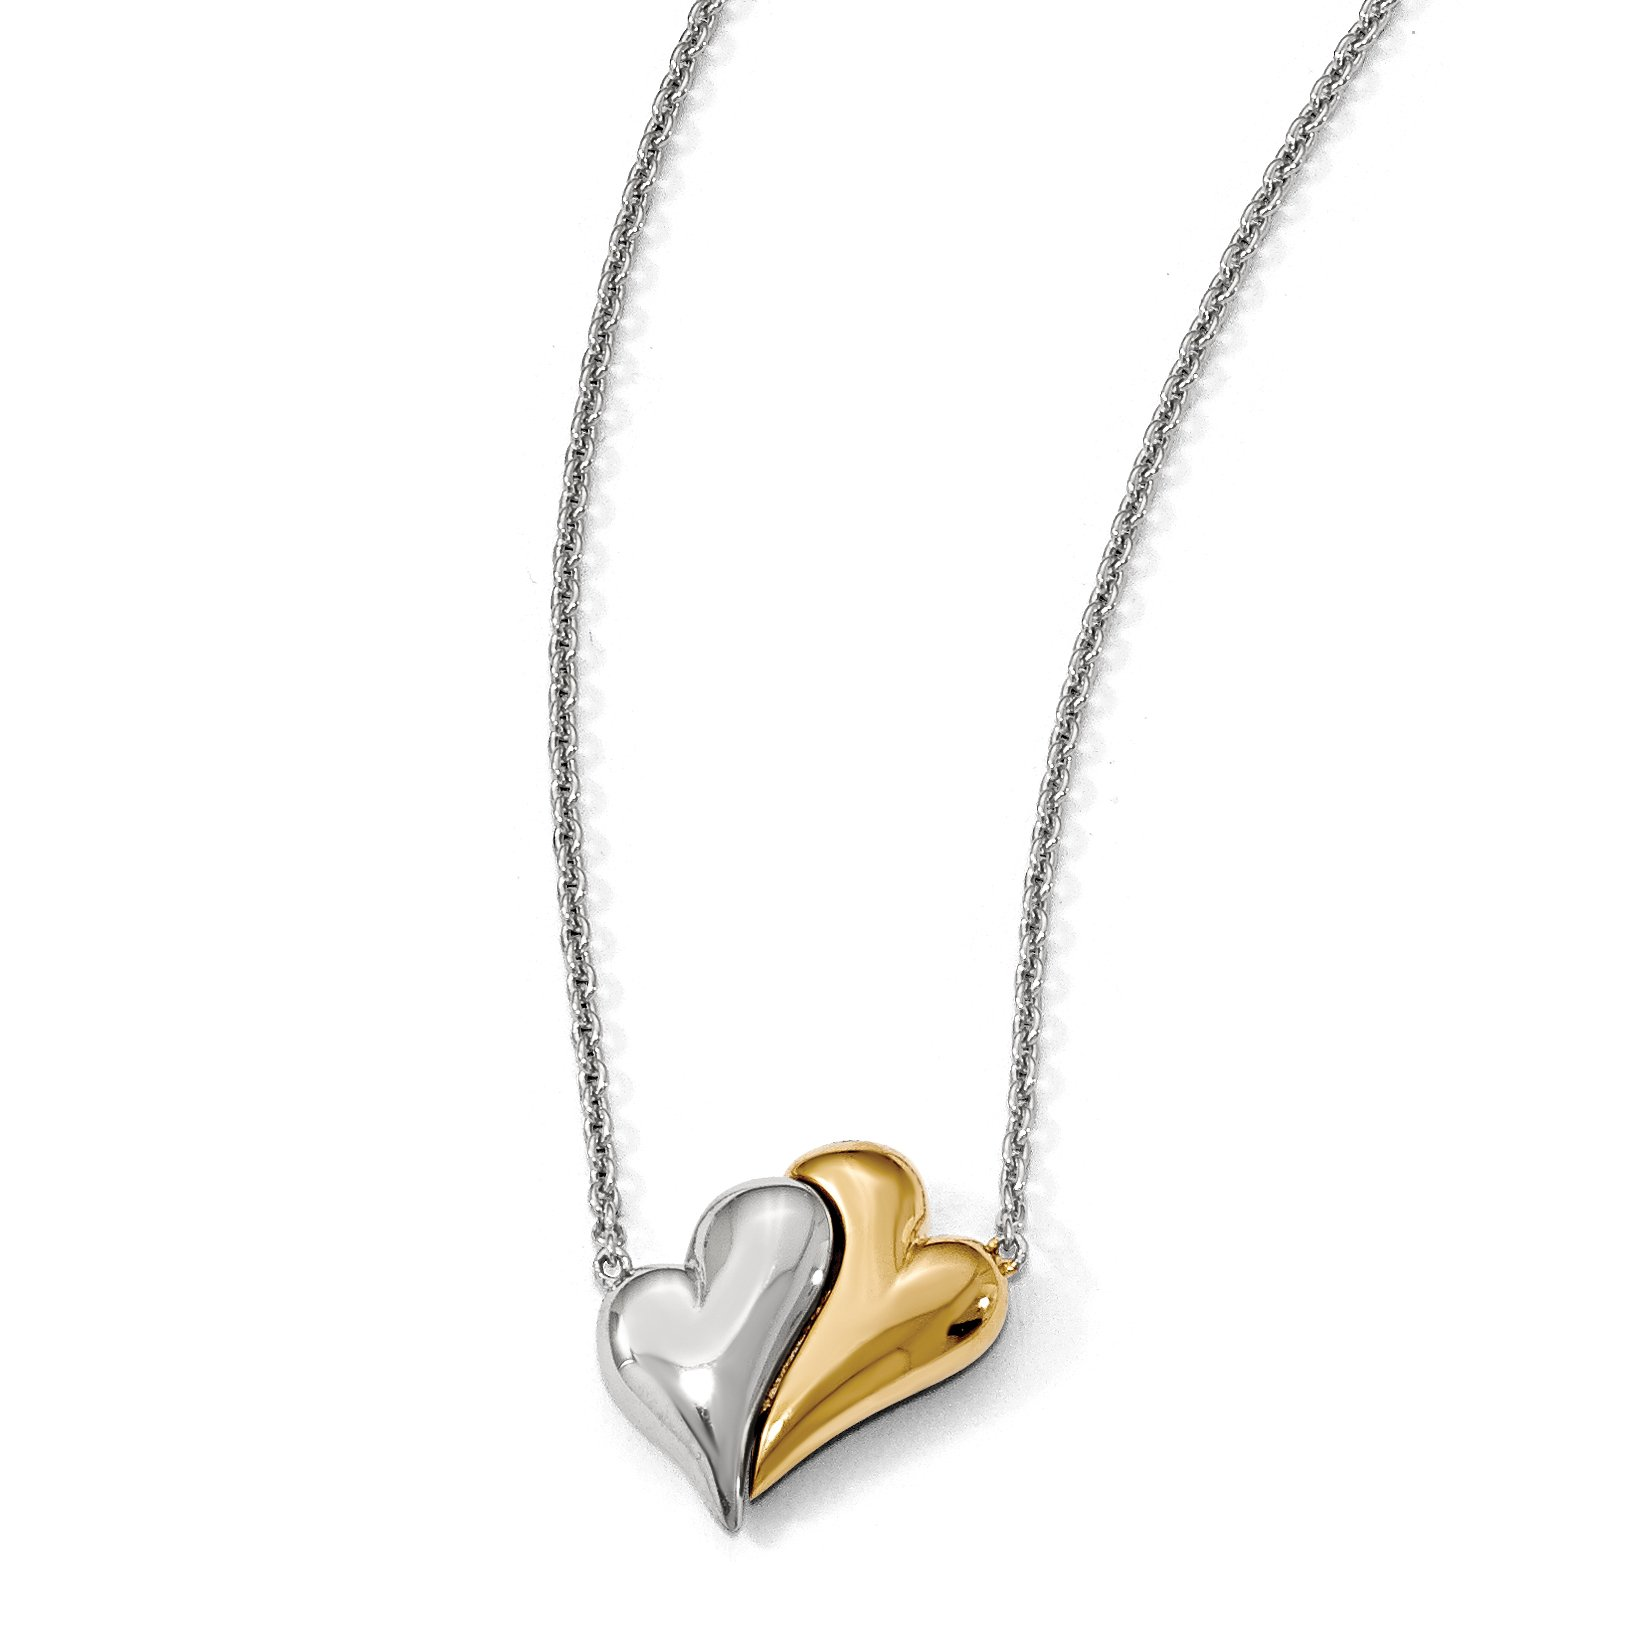 ICE CARATS 925 Sterling Silver Gold Plated Magnetic Double Heart Adjustable Chain Necklace S/love Fine Jewelry Gift Set For Women Heart